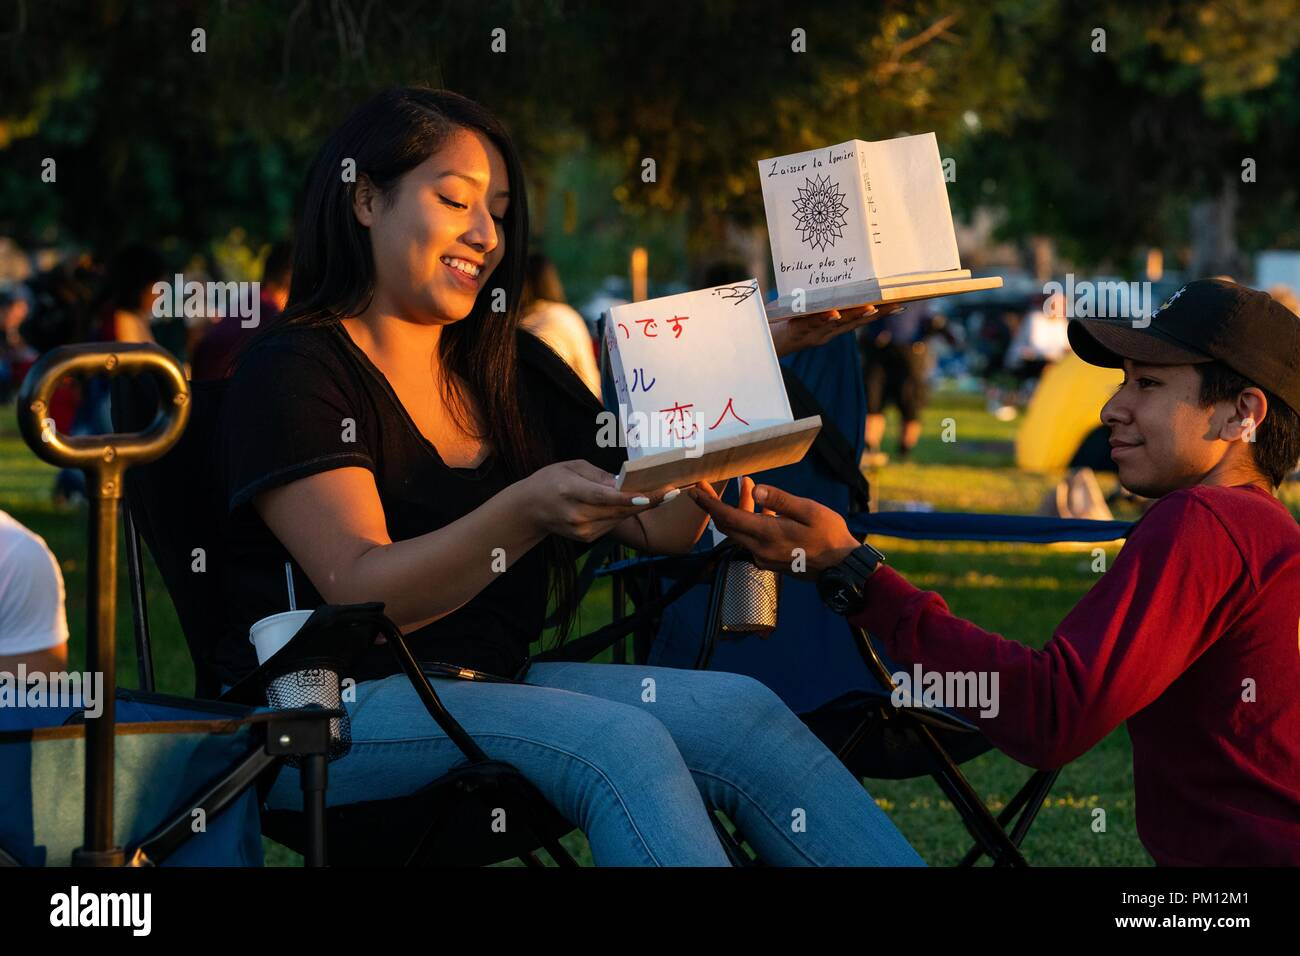 Los Angeles, USA. 15th Sep, 2018. People make water lanterns at the Water Lantern Festival in Los Angeles, the United States, Sept. 15, 2018. Credit: Qian Weizhong/Xinhua/Alamy Live News Stock Photo